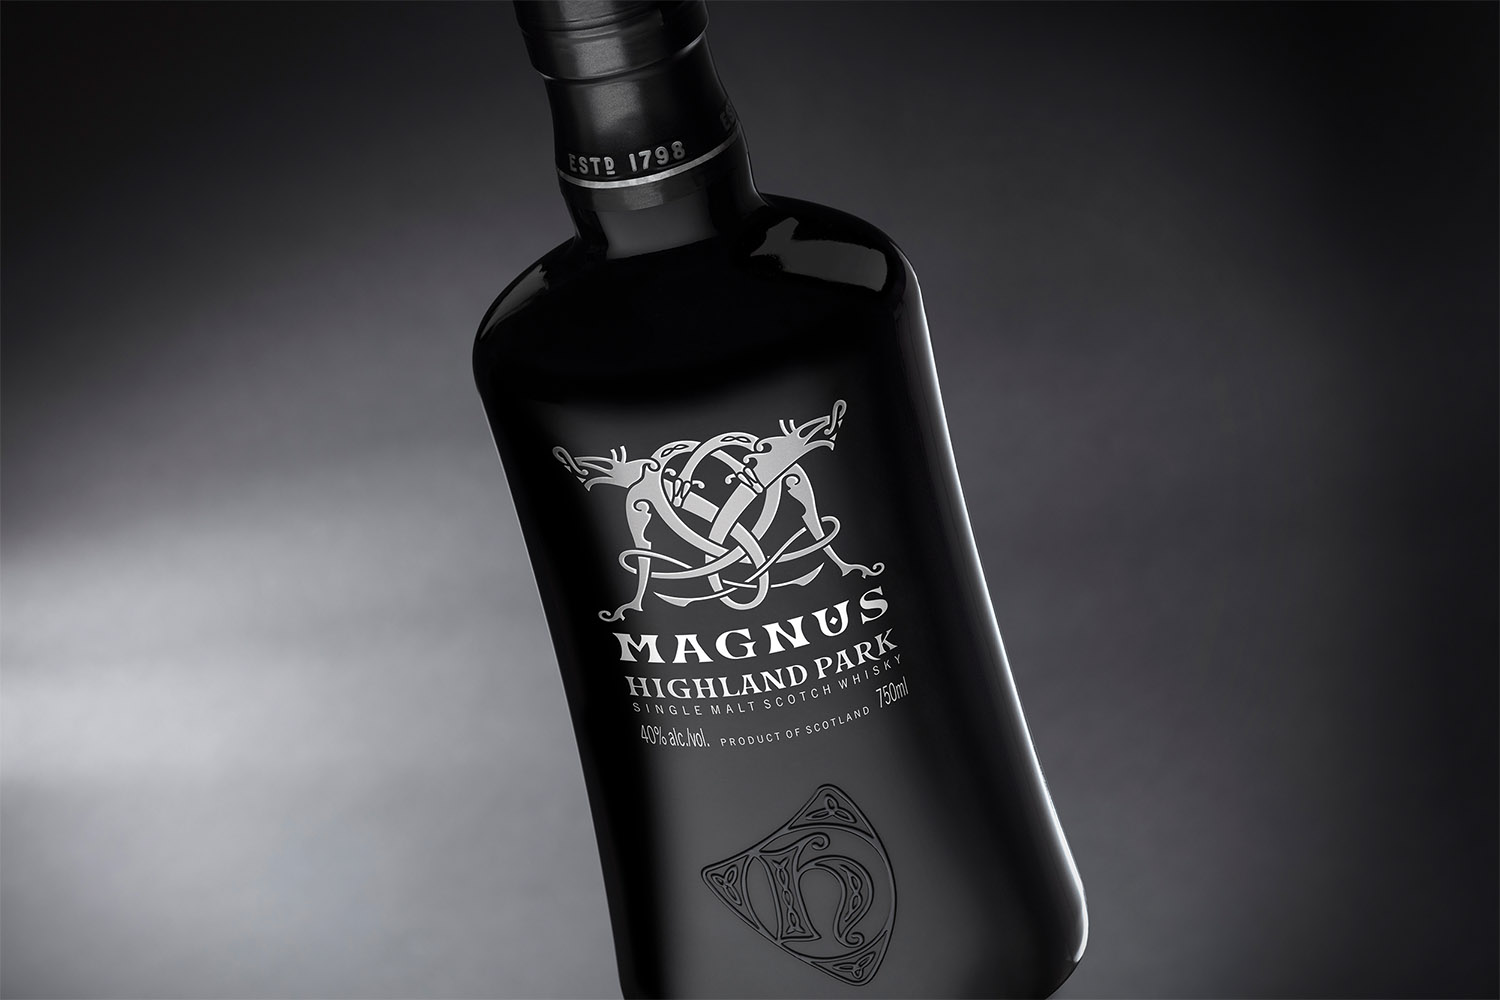 Mountain_Agency_Glasgow_Highland Park_Magnus_002.jpg